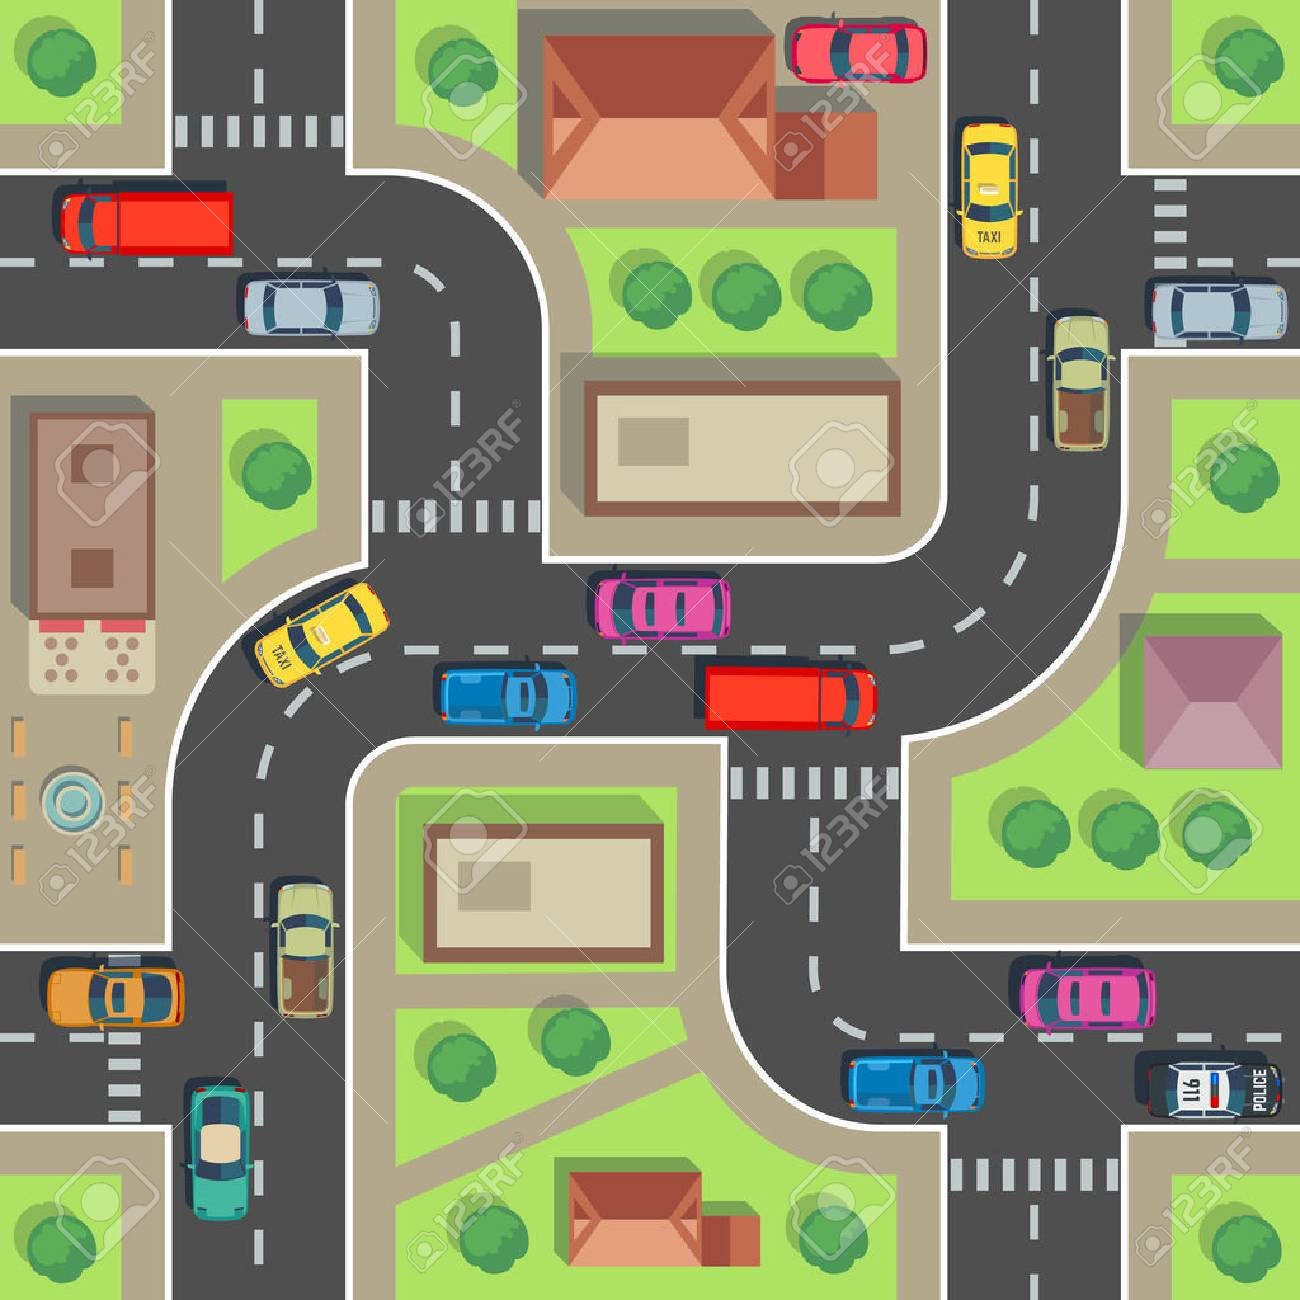 Seamless city map. Top view building and street with cars and trucks. Urban plan vector endless texture. Road and building architecture, street transport seamless illustration - 110270971